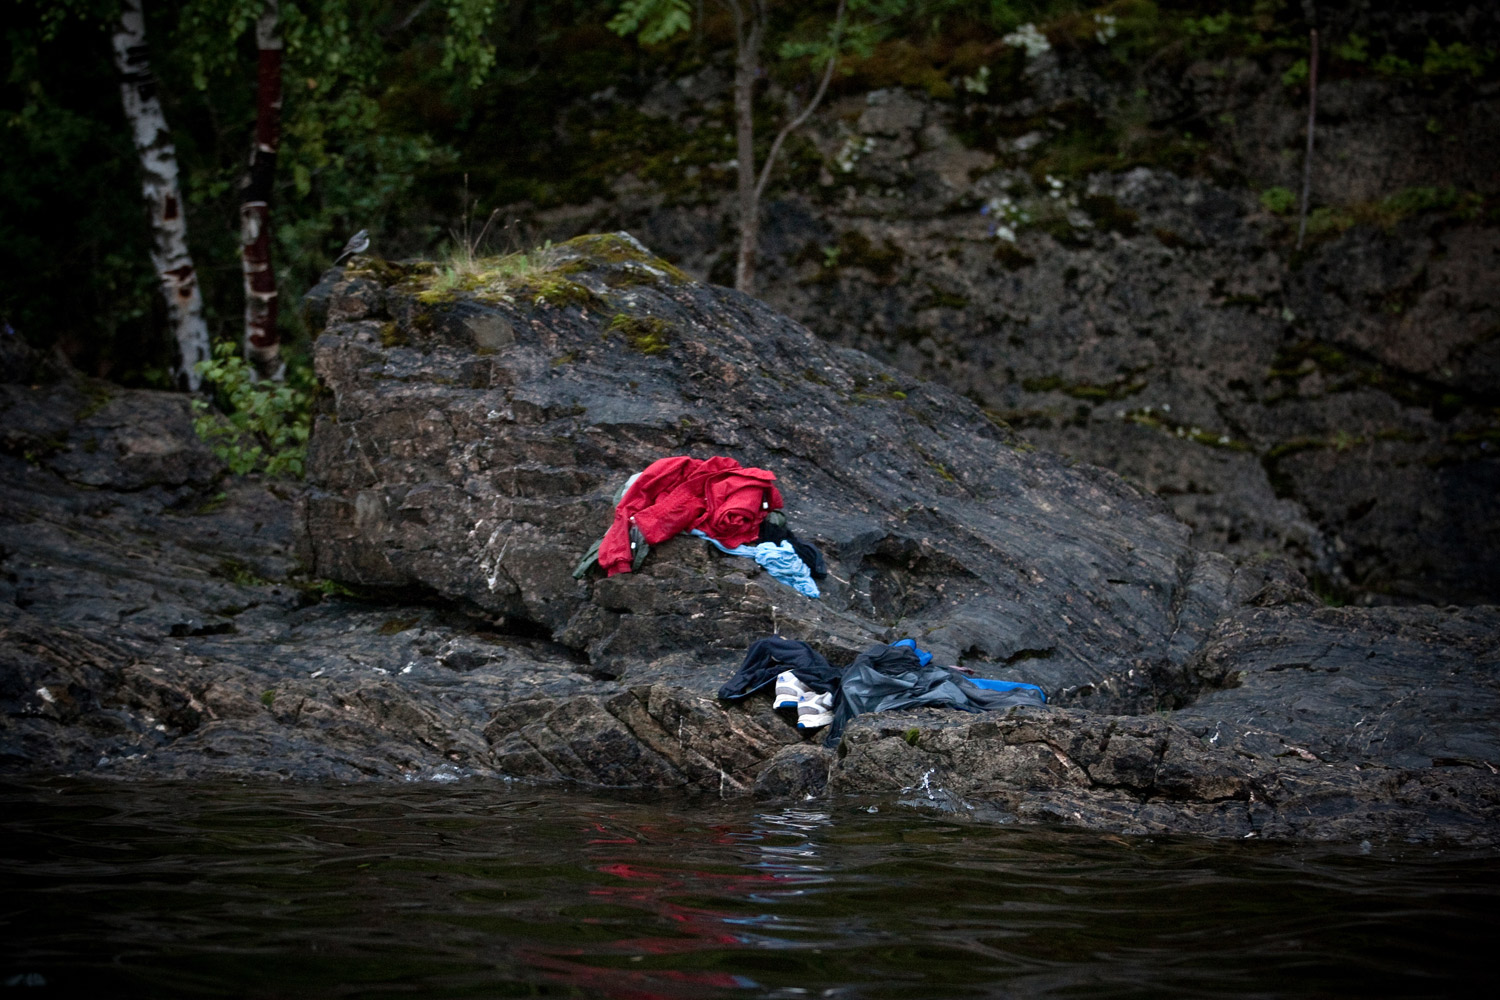 Second Prize Spot News StoriesJuly 22. Utøya, Norway. Trying to avoid the killer's bullets, many people jumped into the cold water. Anders Behring Breivik killed 69 people on July 22 on the small island of Utøya outside Oslo in Norway.